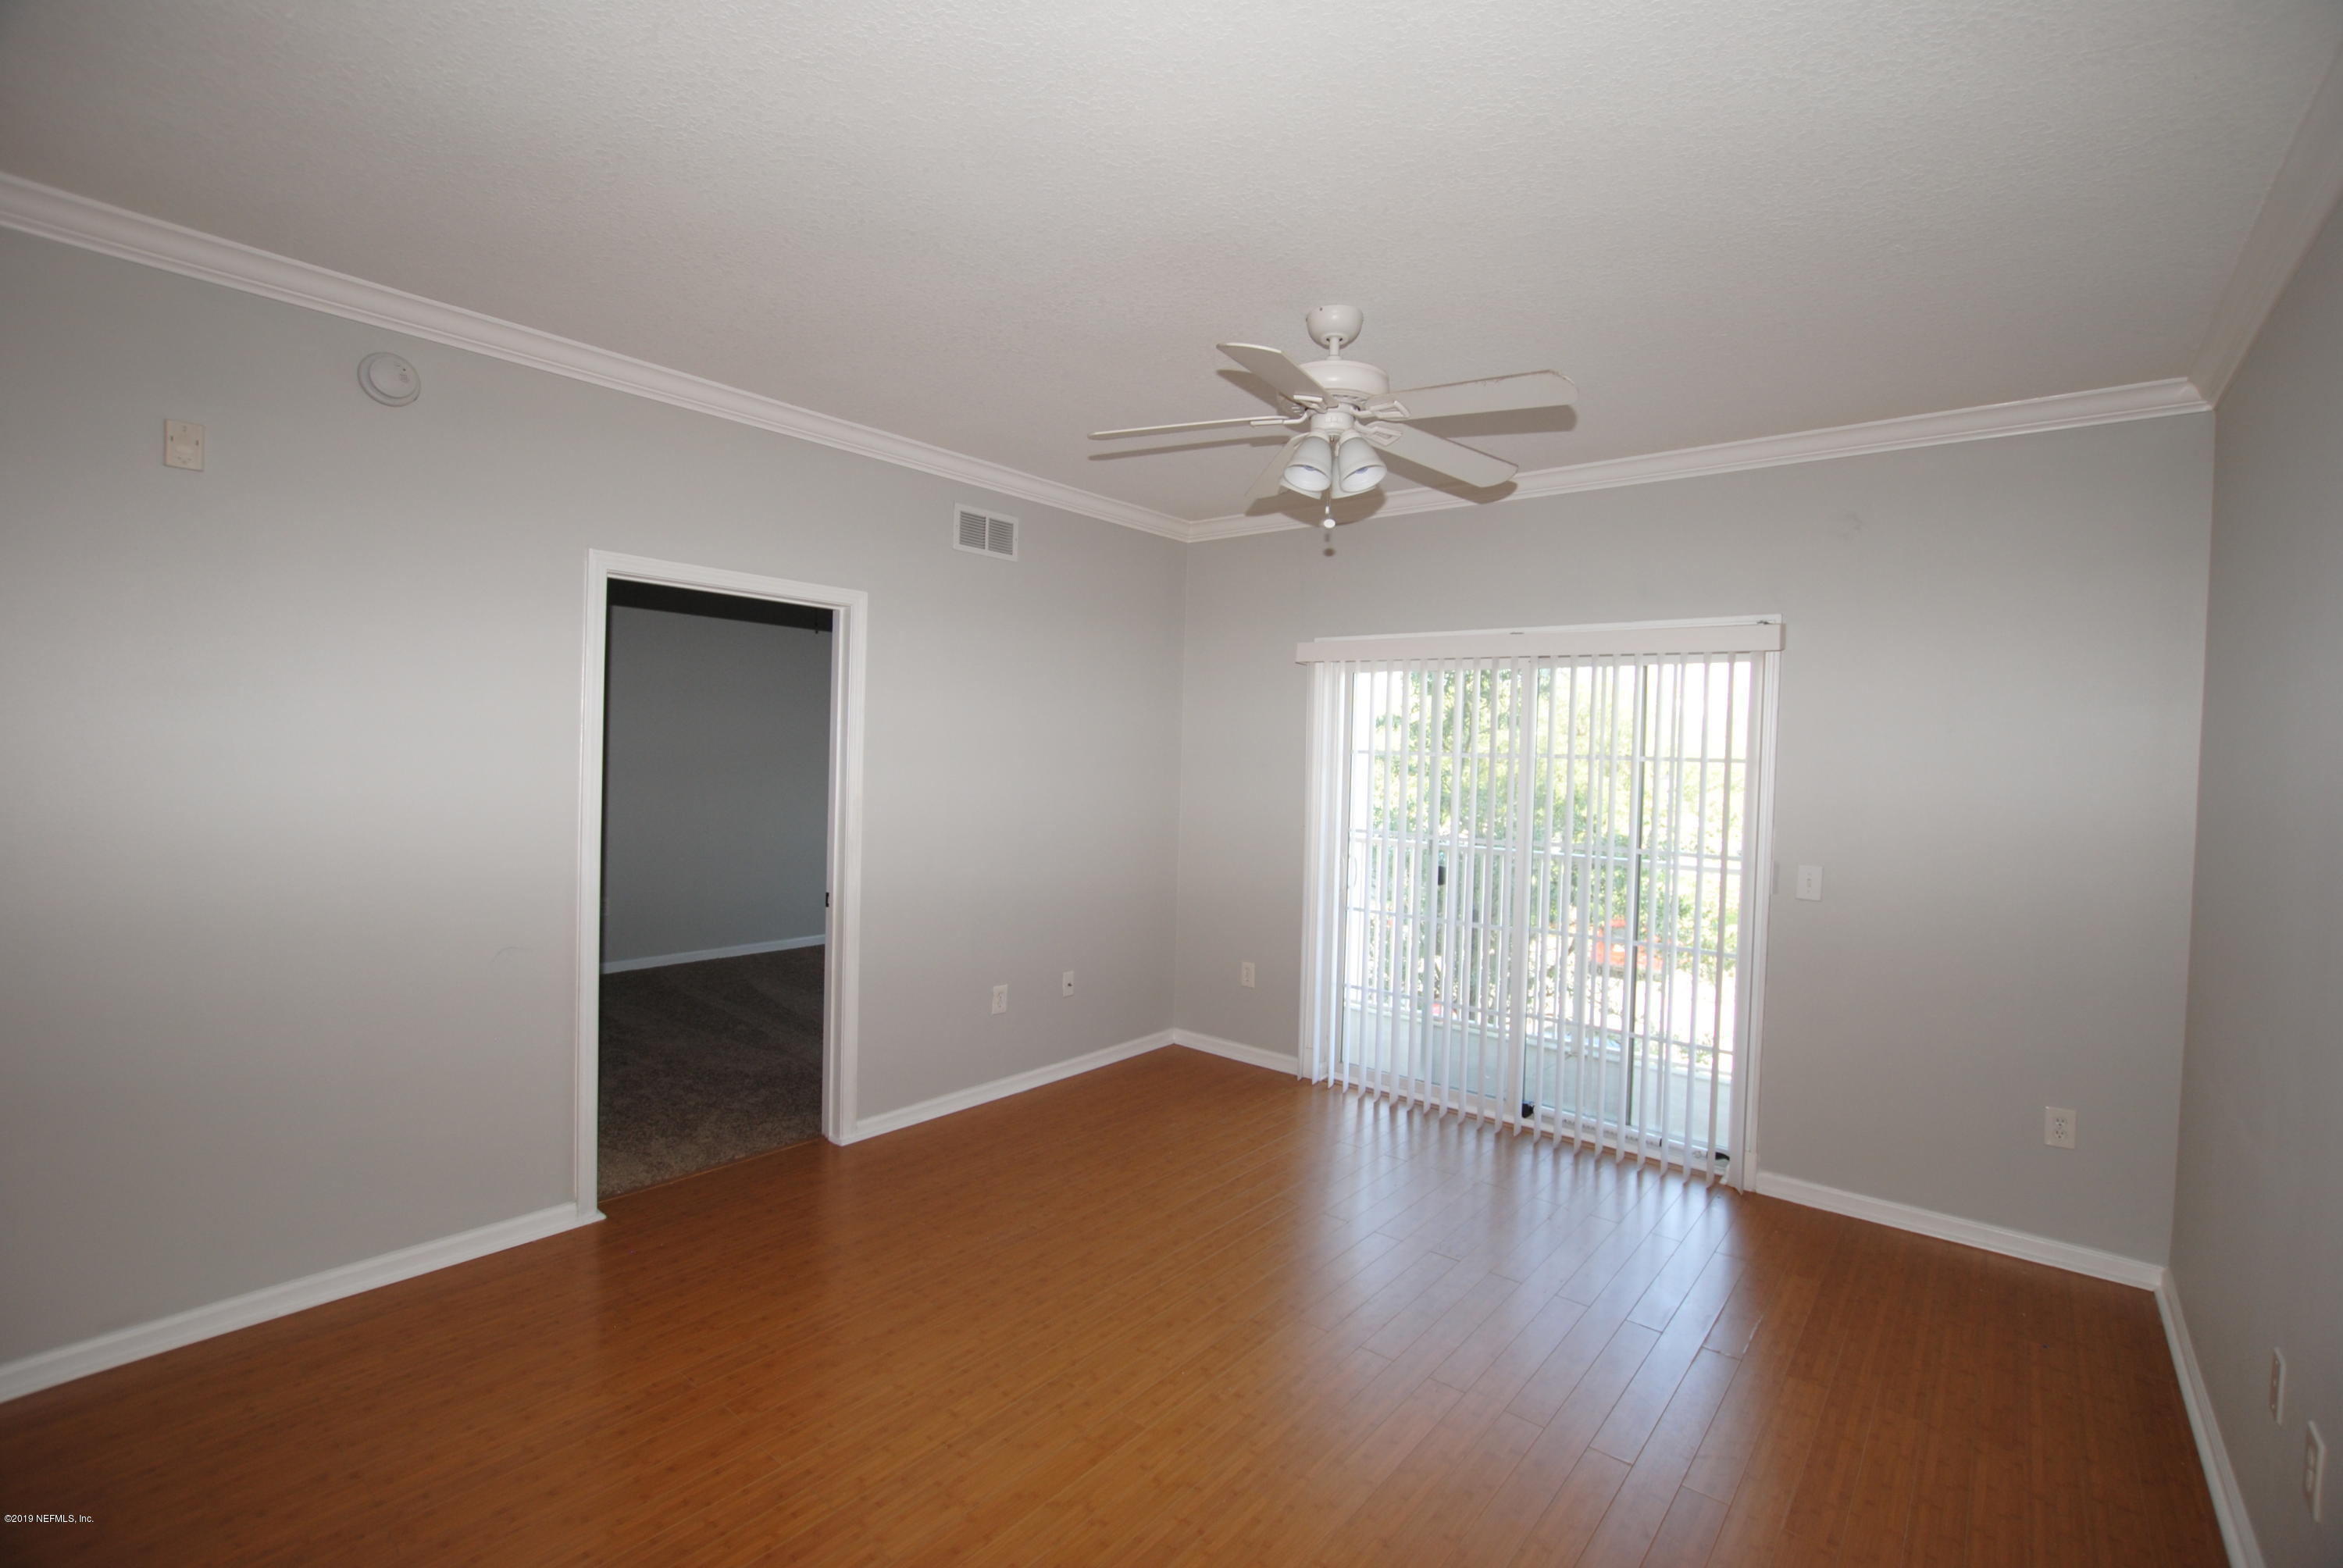 4998 KEY LIME, JACKSONVILLE, FLORIDA 32256, 3 Bedrooms Bedrooms, ,2 BathroomsBathrooms,Condo,For sale,KEY LIME,1014513